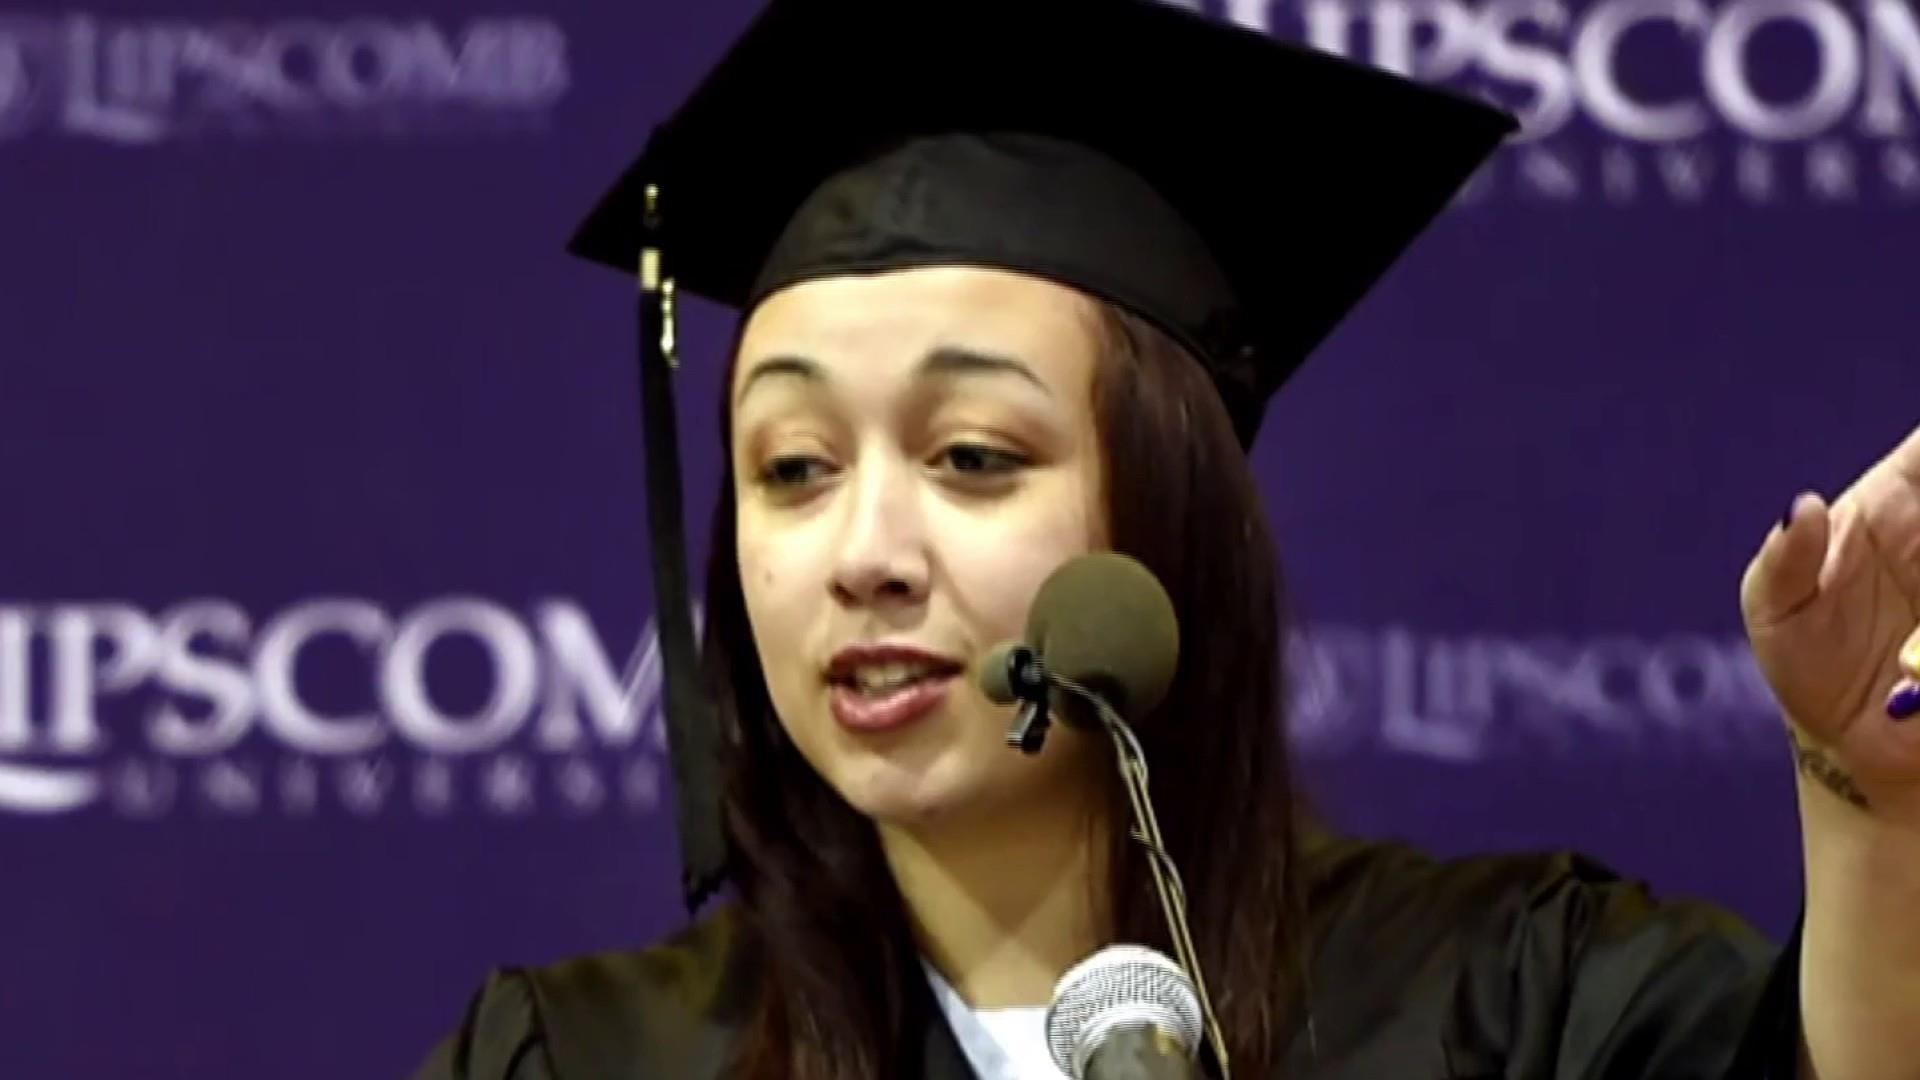 Sex trafficking victim Cyntoia Brown free after spending 15 years of life sentence